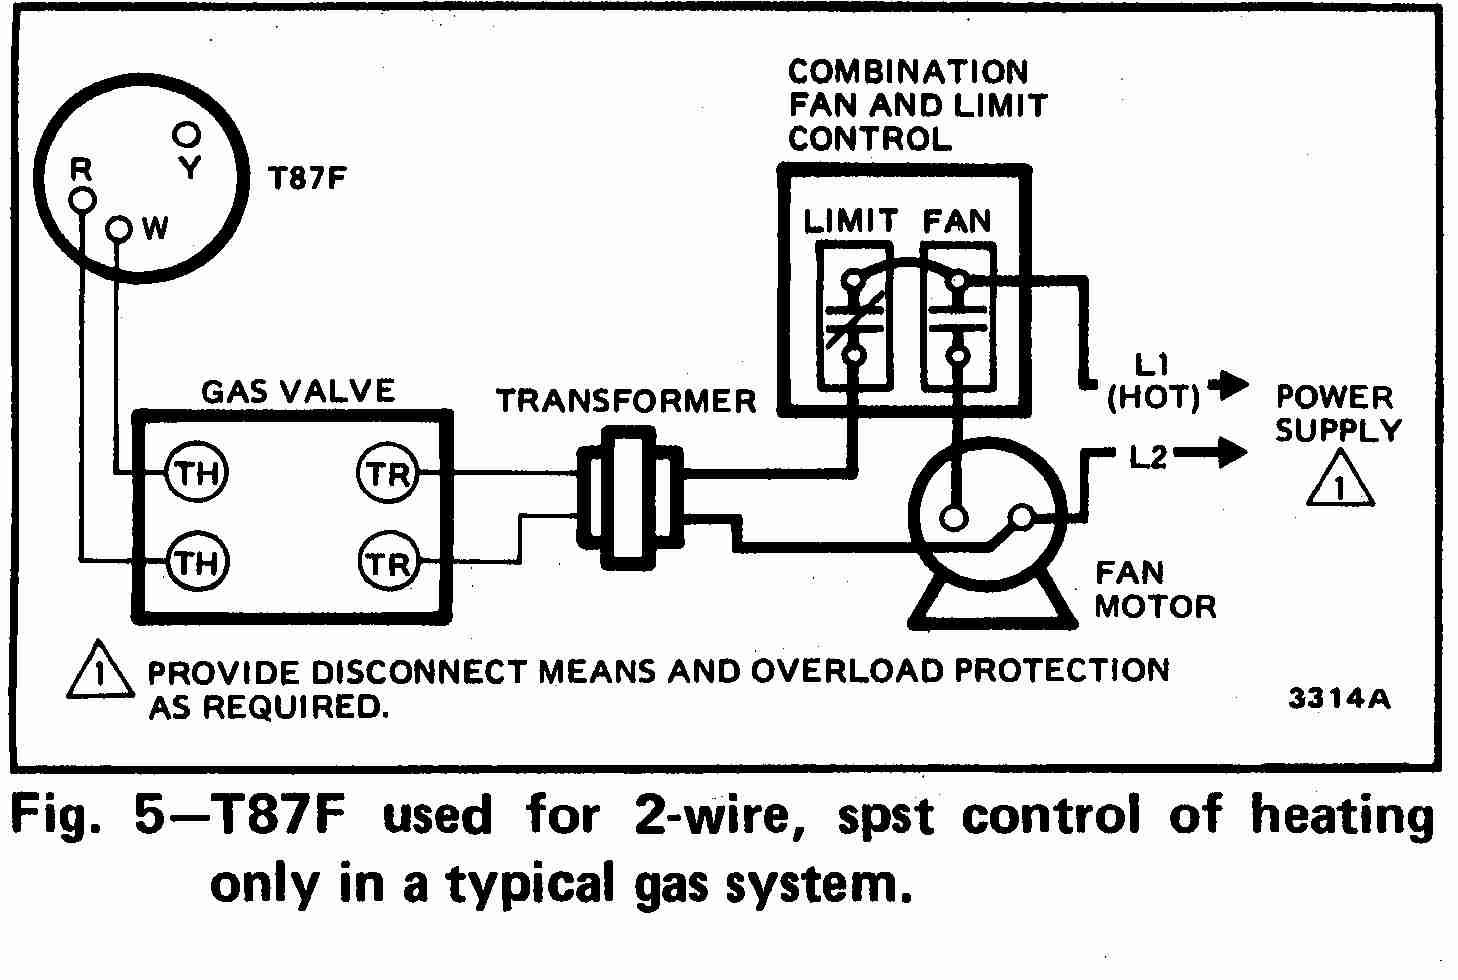 hight resolution of room thermostat wiring diagrams for hvac systems hvac compressor wiring diagram hvac system wiring